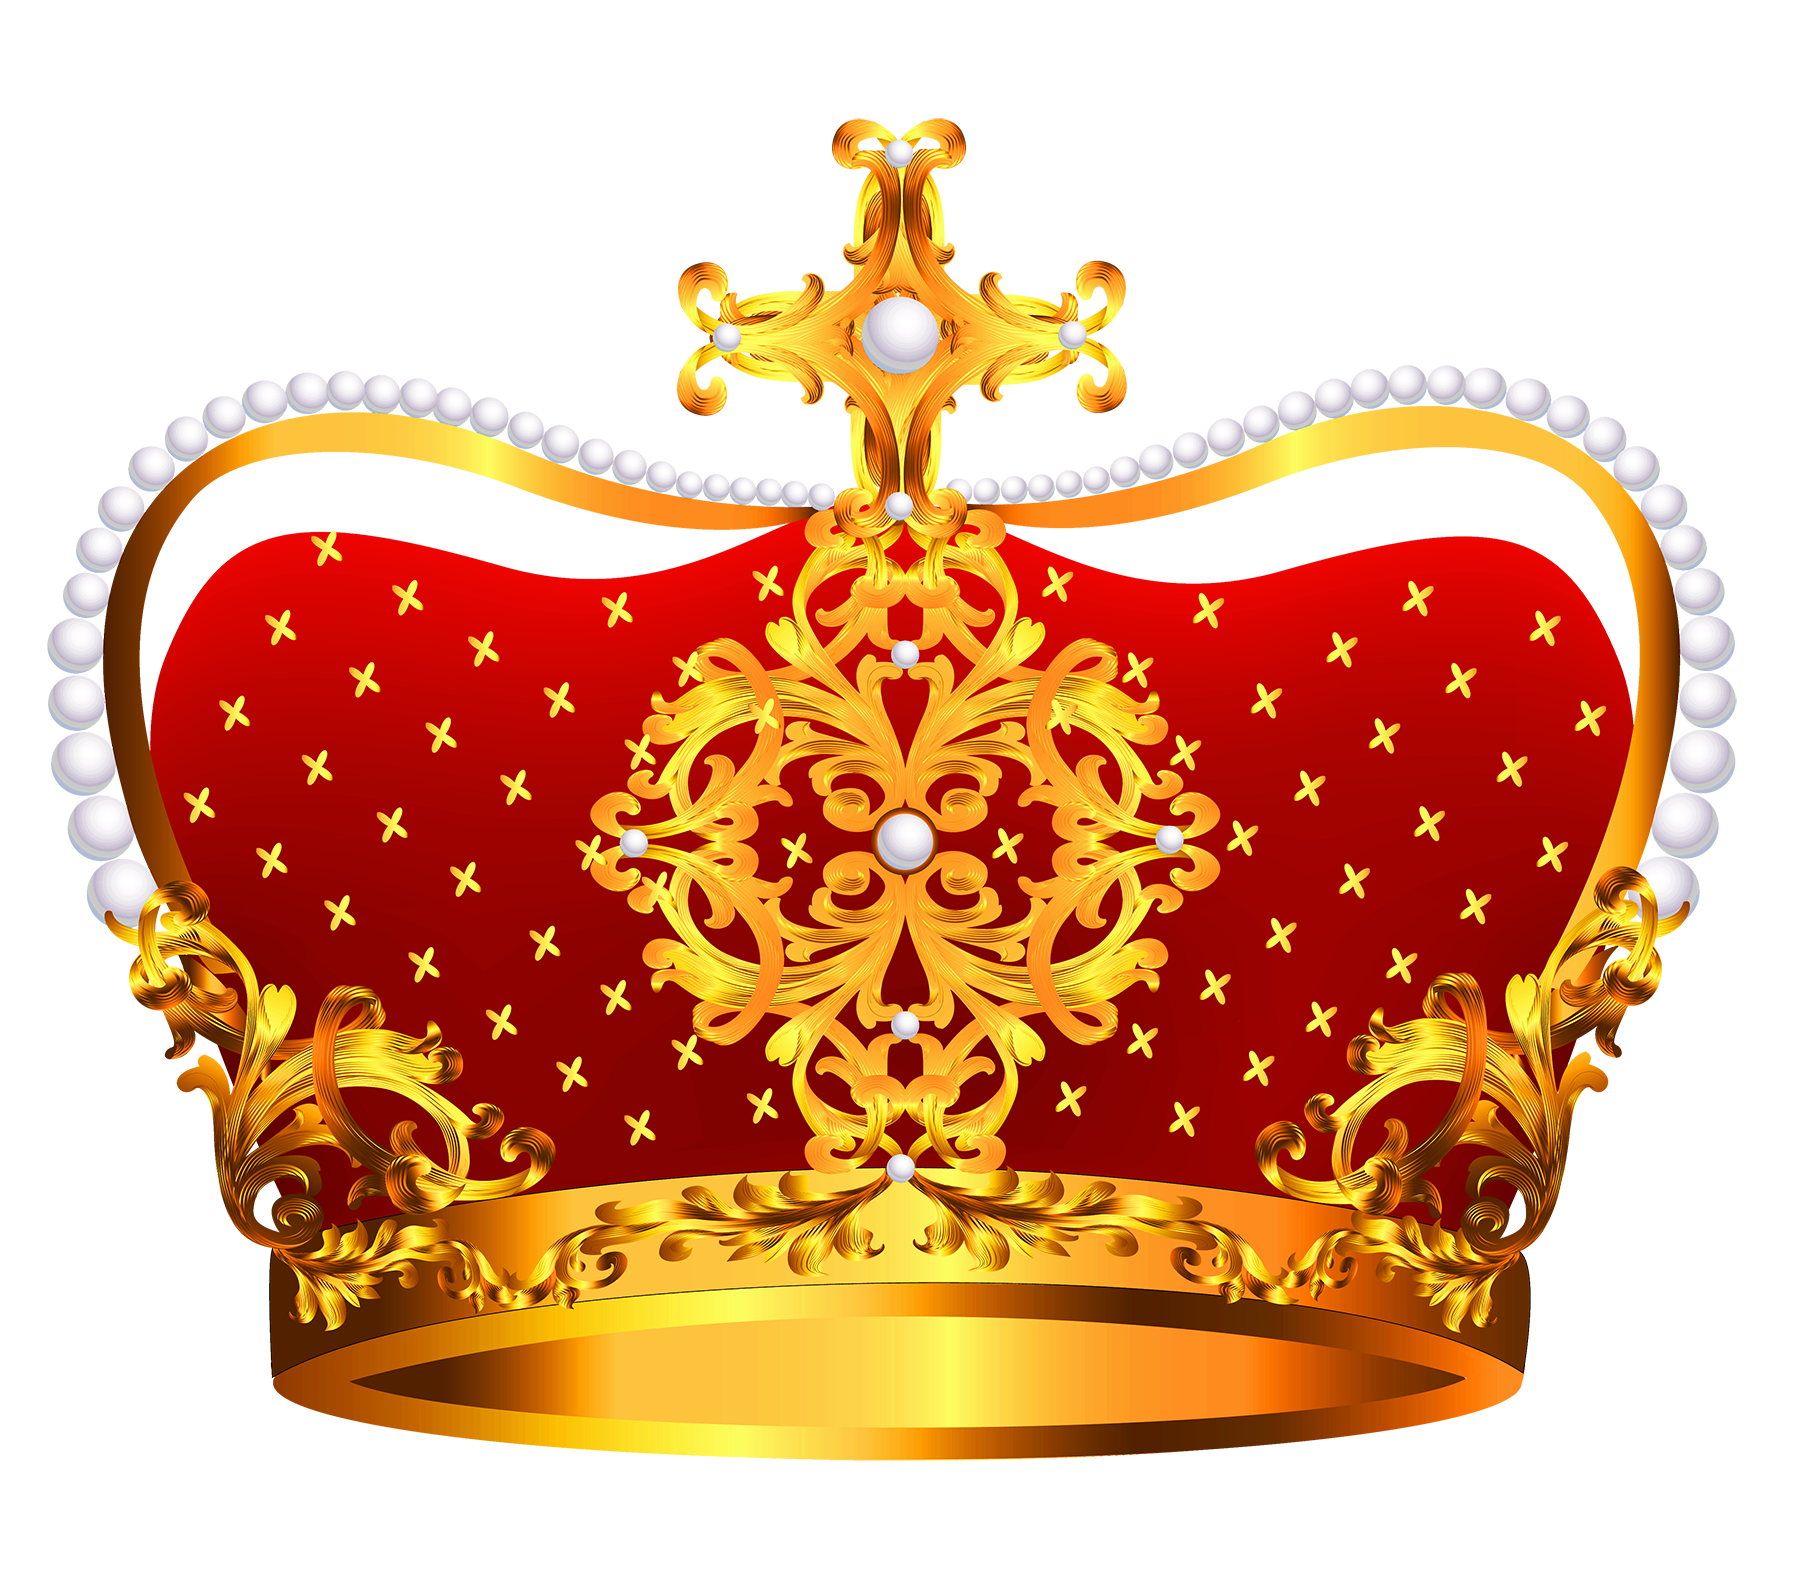 Free clipart crown graphic transparent Crown Royal Clipart girl png - Free Clipart on Dumielauxepices.net graphic transparent